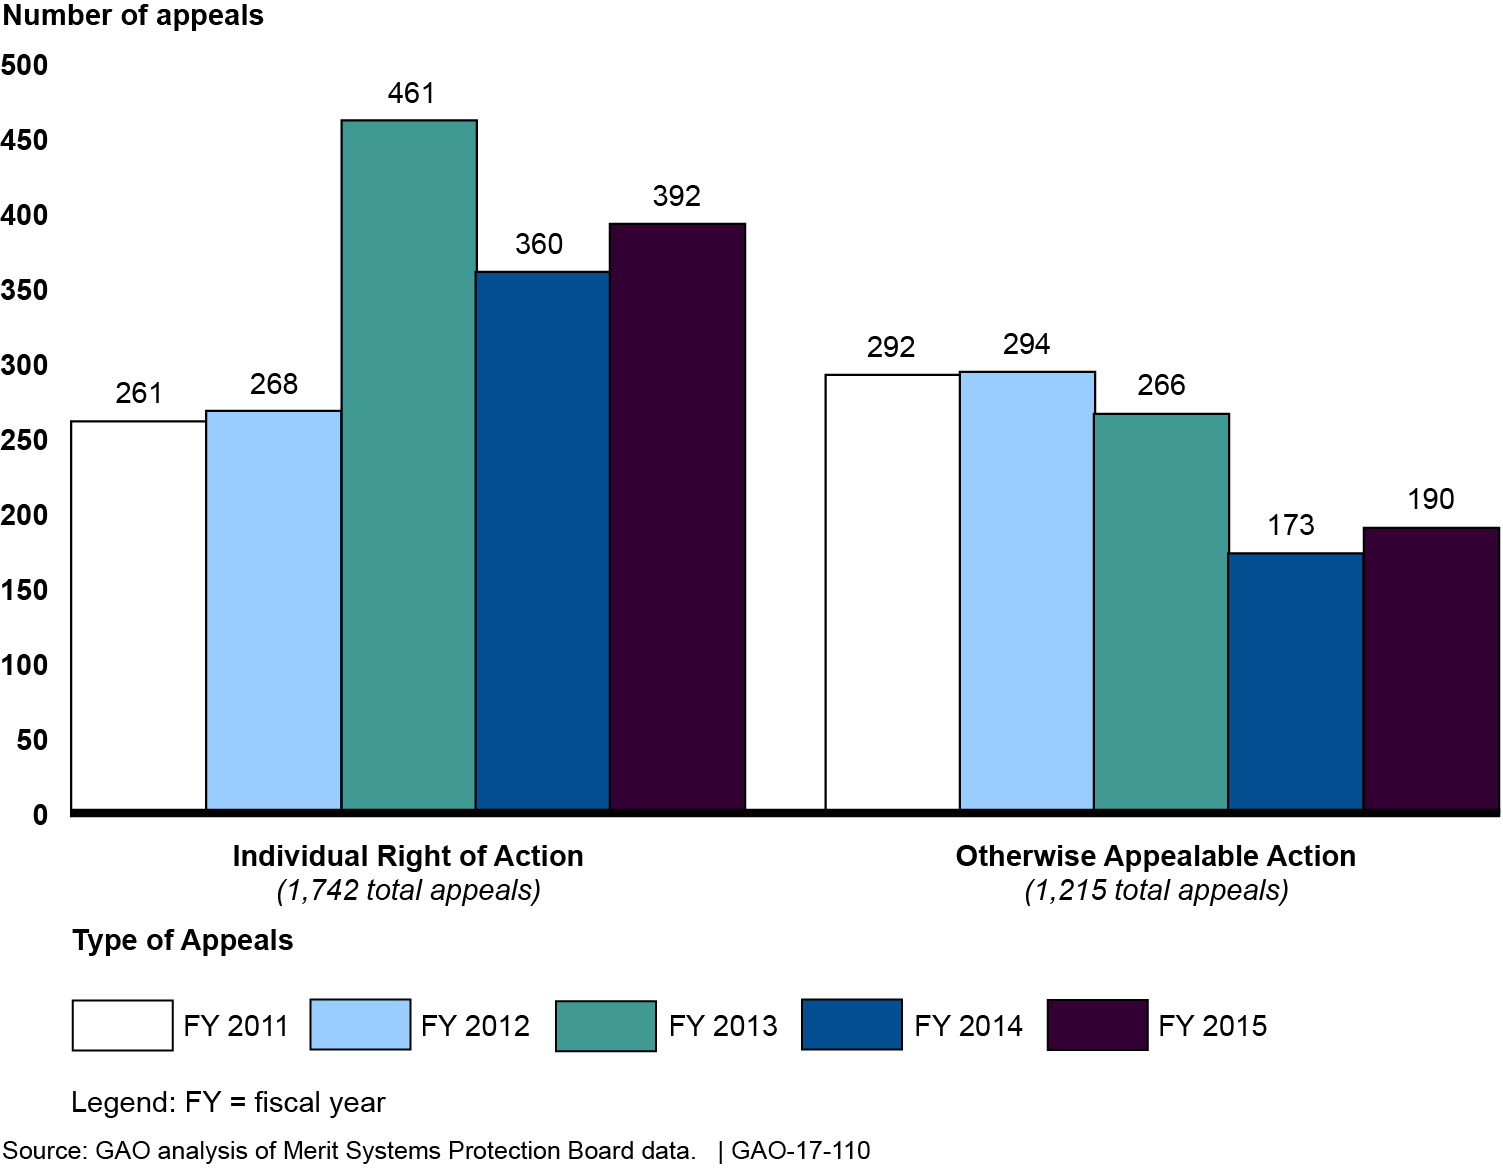 Bar chart showing increases in the number of individual right of action appeals in FYs 13, 14 & 15